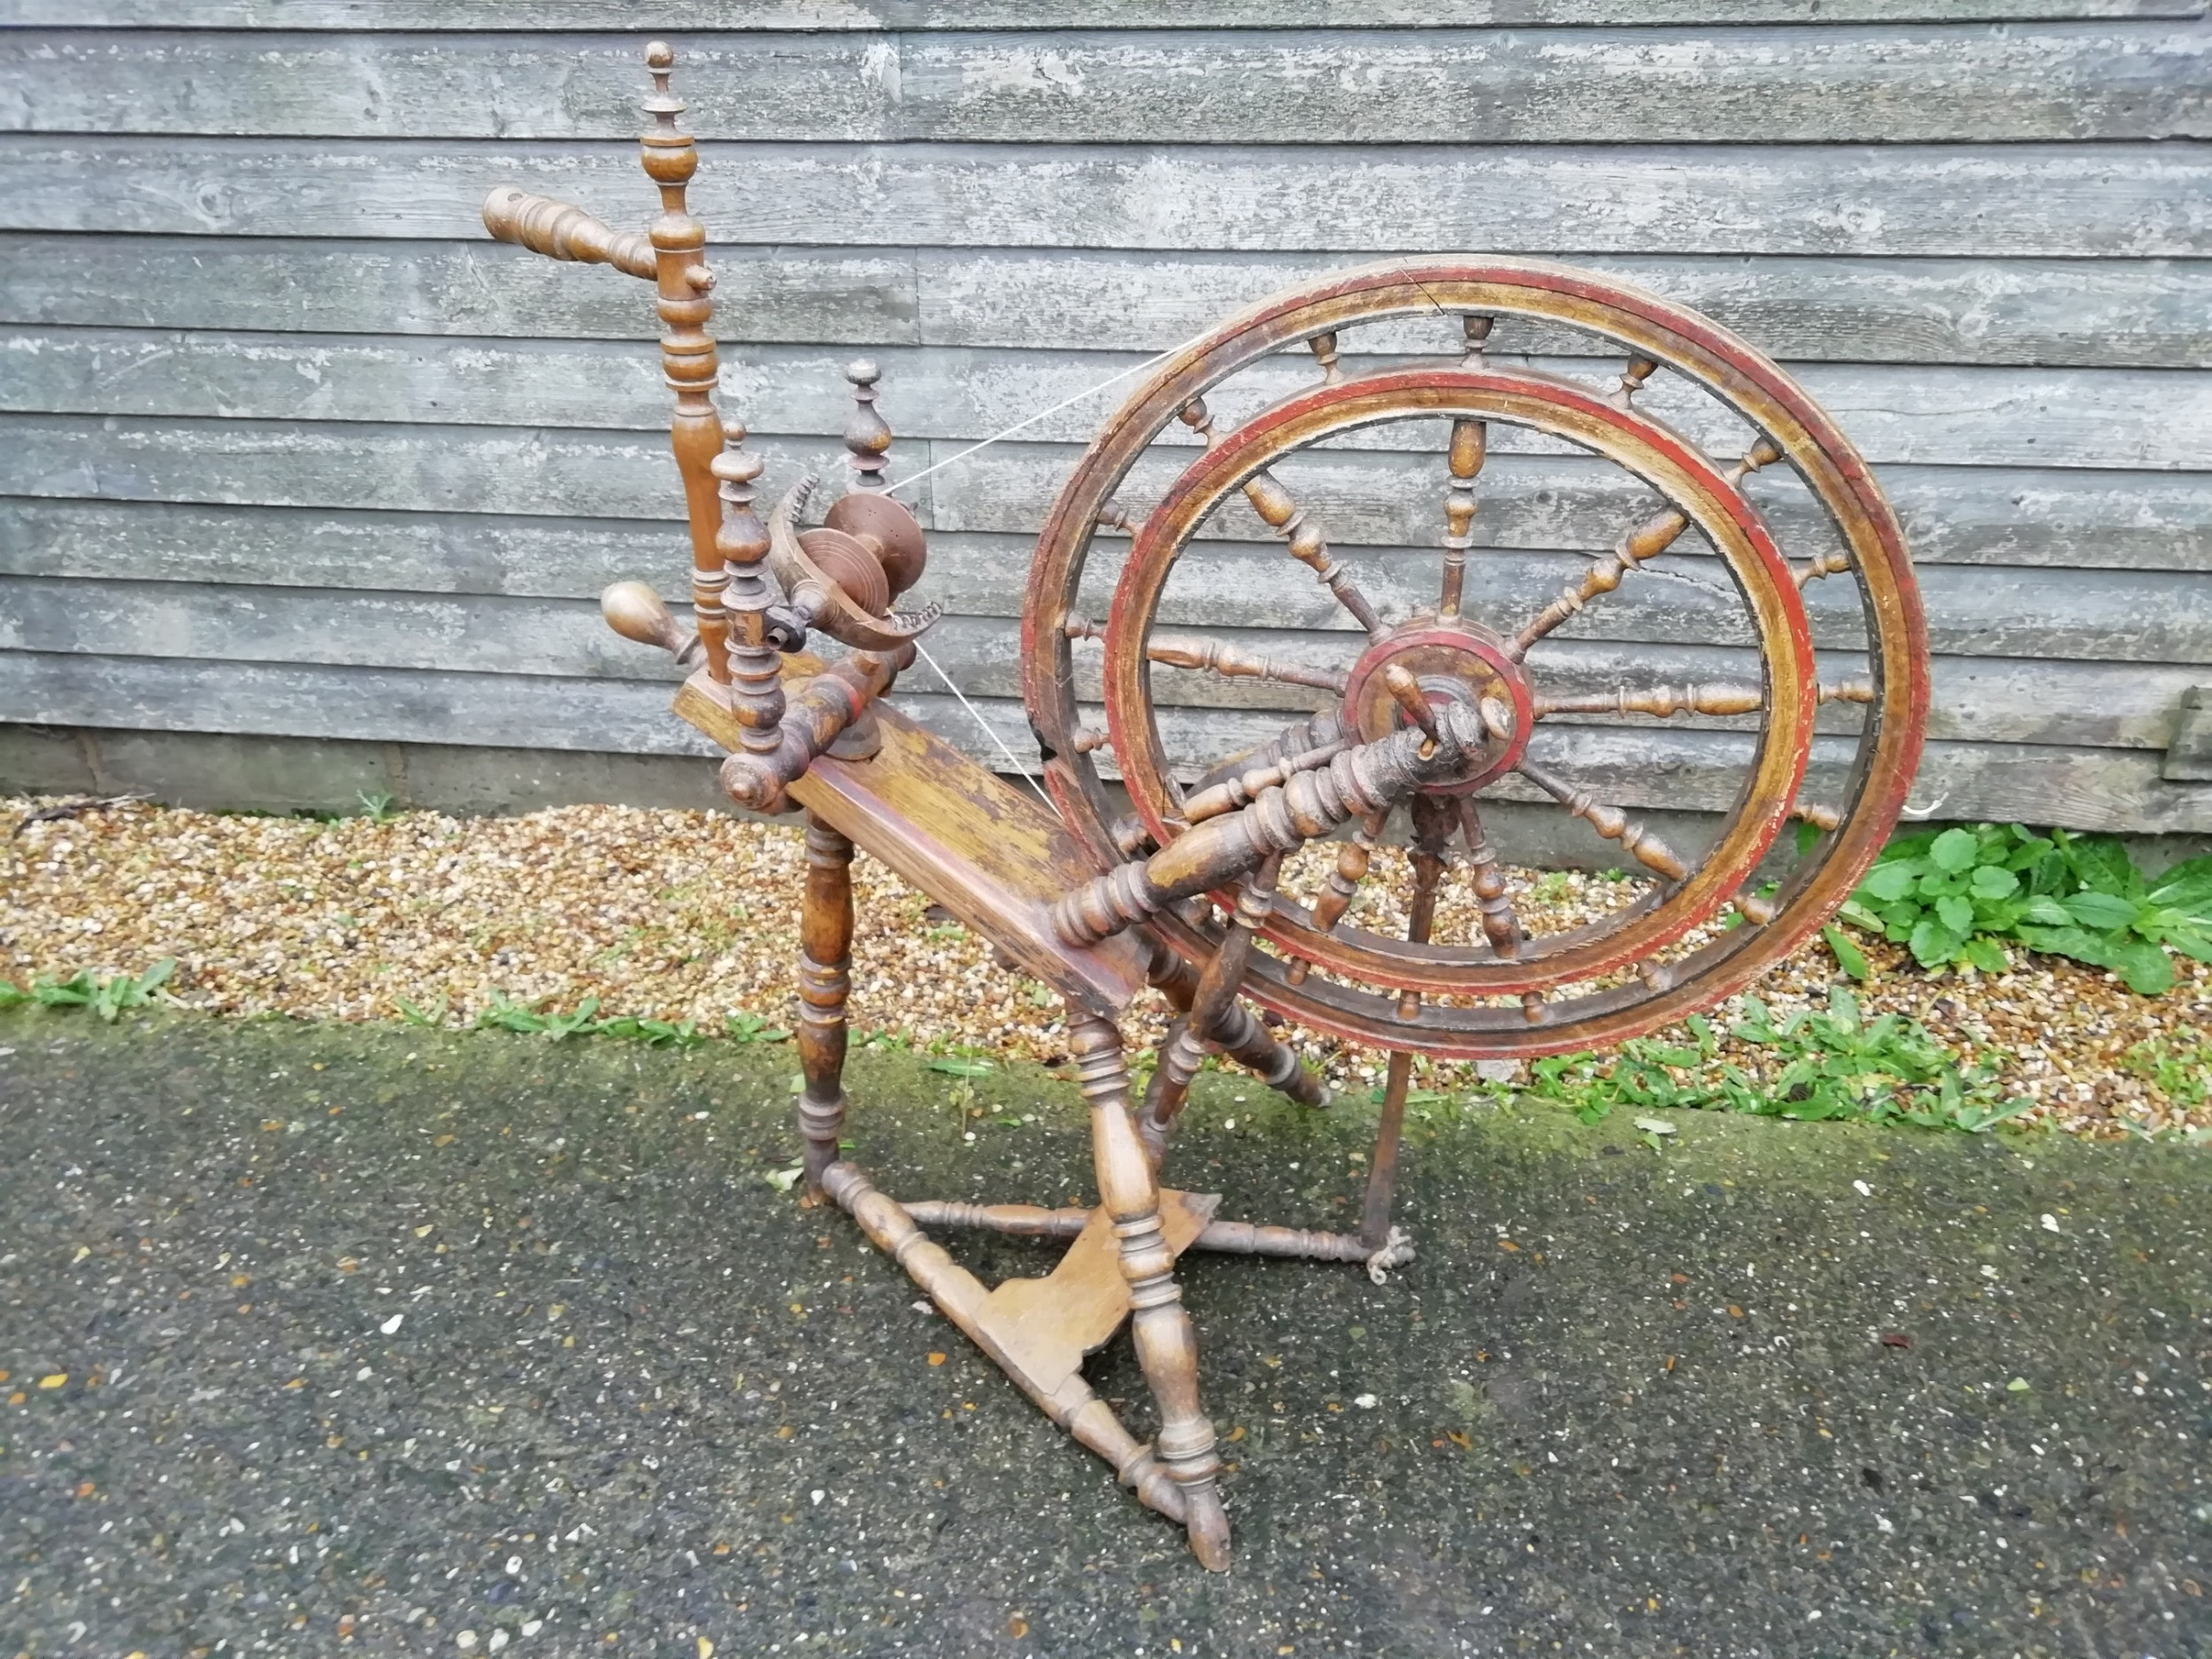 19th century spinning wheel